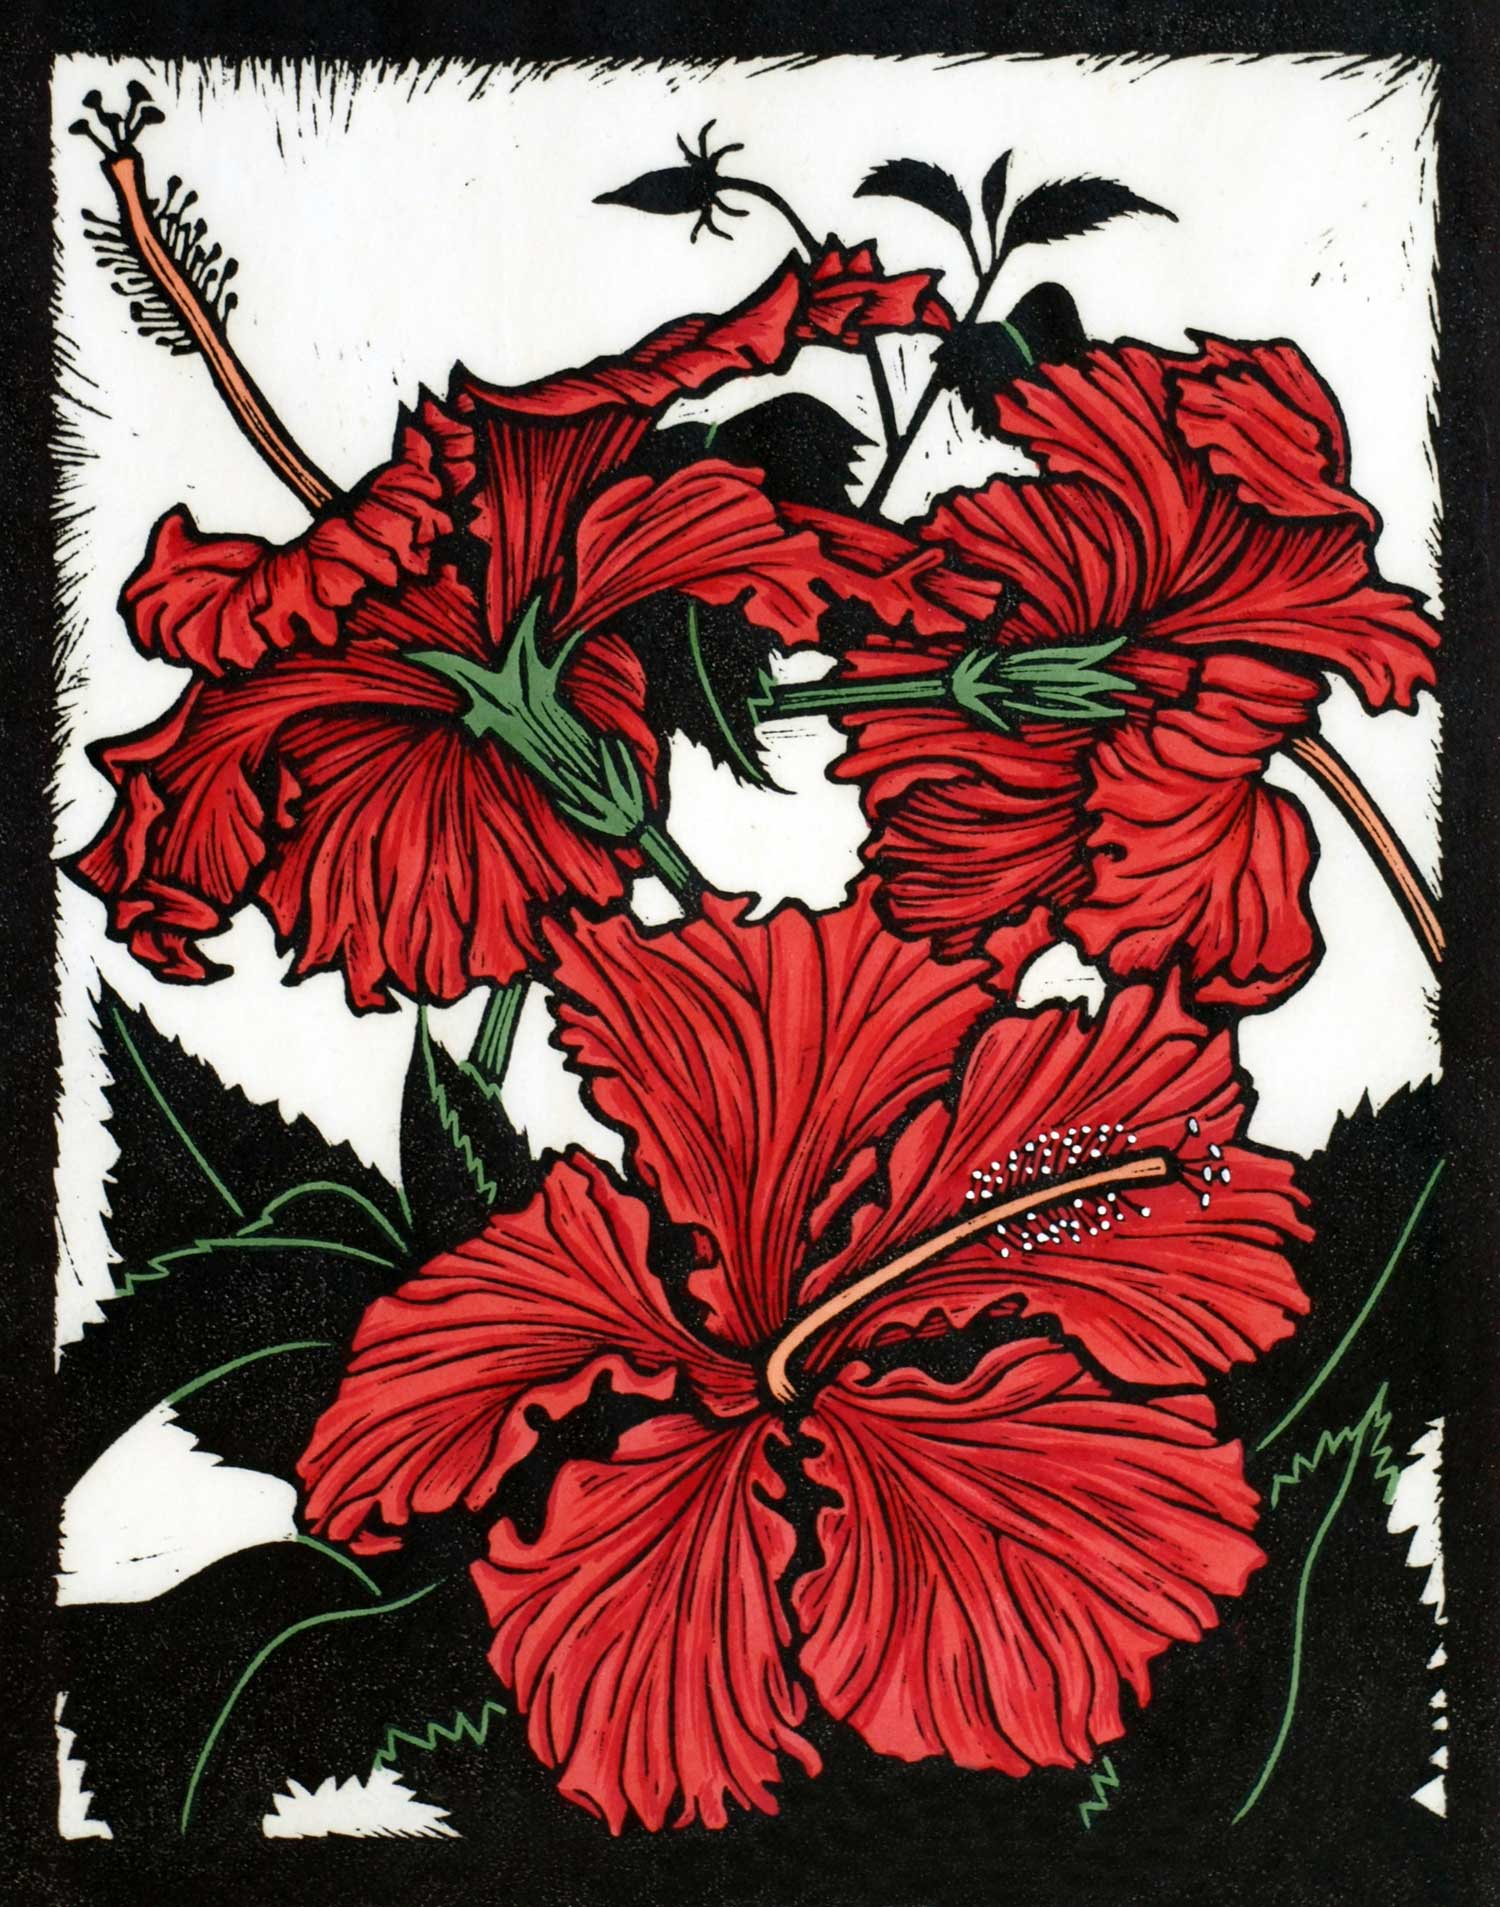 YANN'S RED HIBISCUS  28 X 22 CM, EDITION OF 50  HAND-COLOURED LINOCUT ON HANDMADE JAPANESE PAPer $650